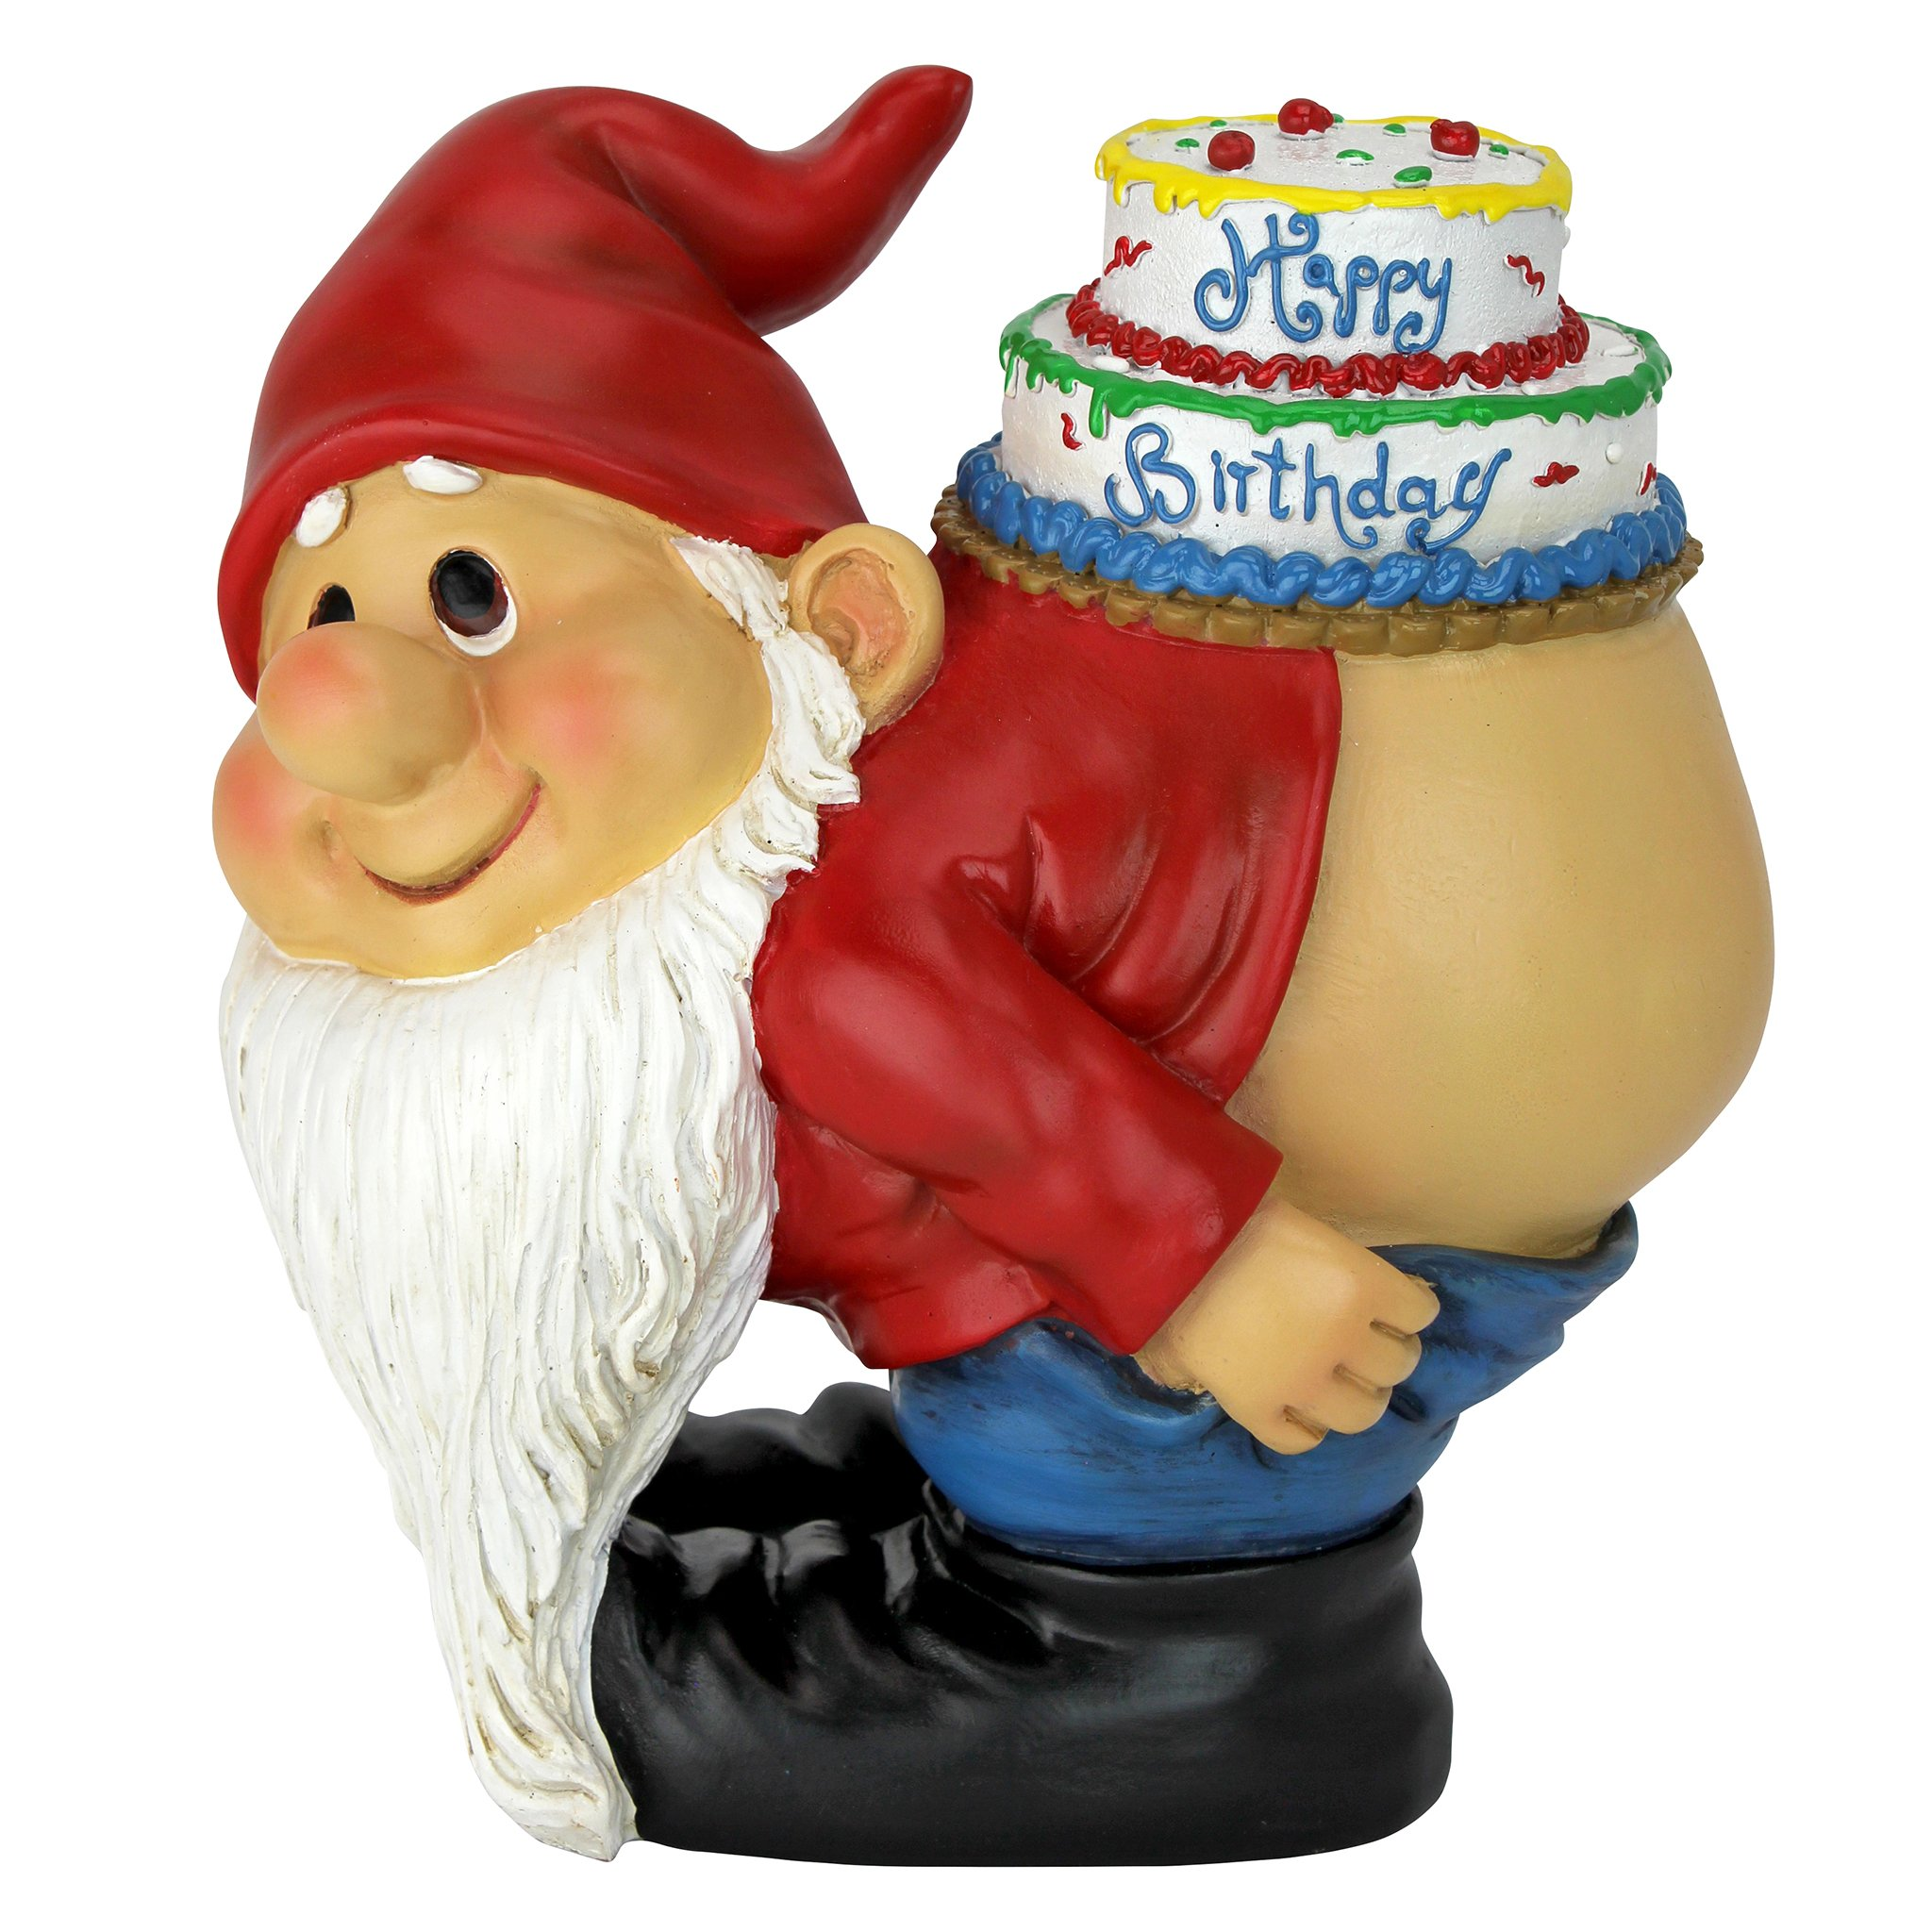 Design Toscano QM17044 Birthday Decorations Garden Gnome Statue Loonie Naughty Gnomes product image